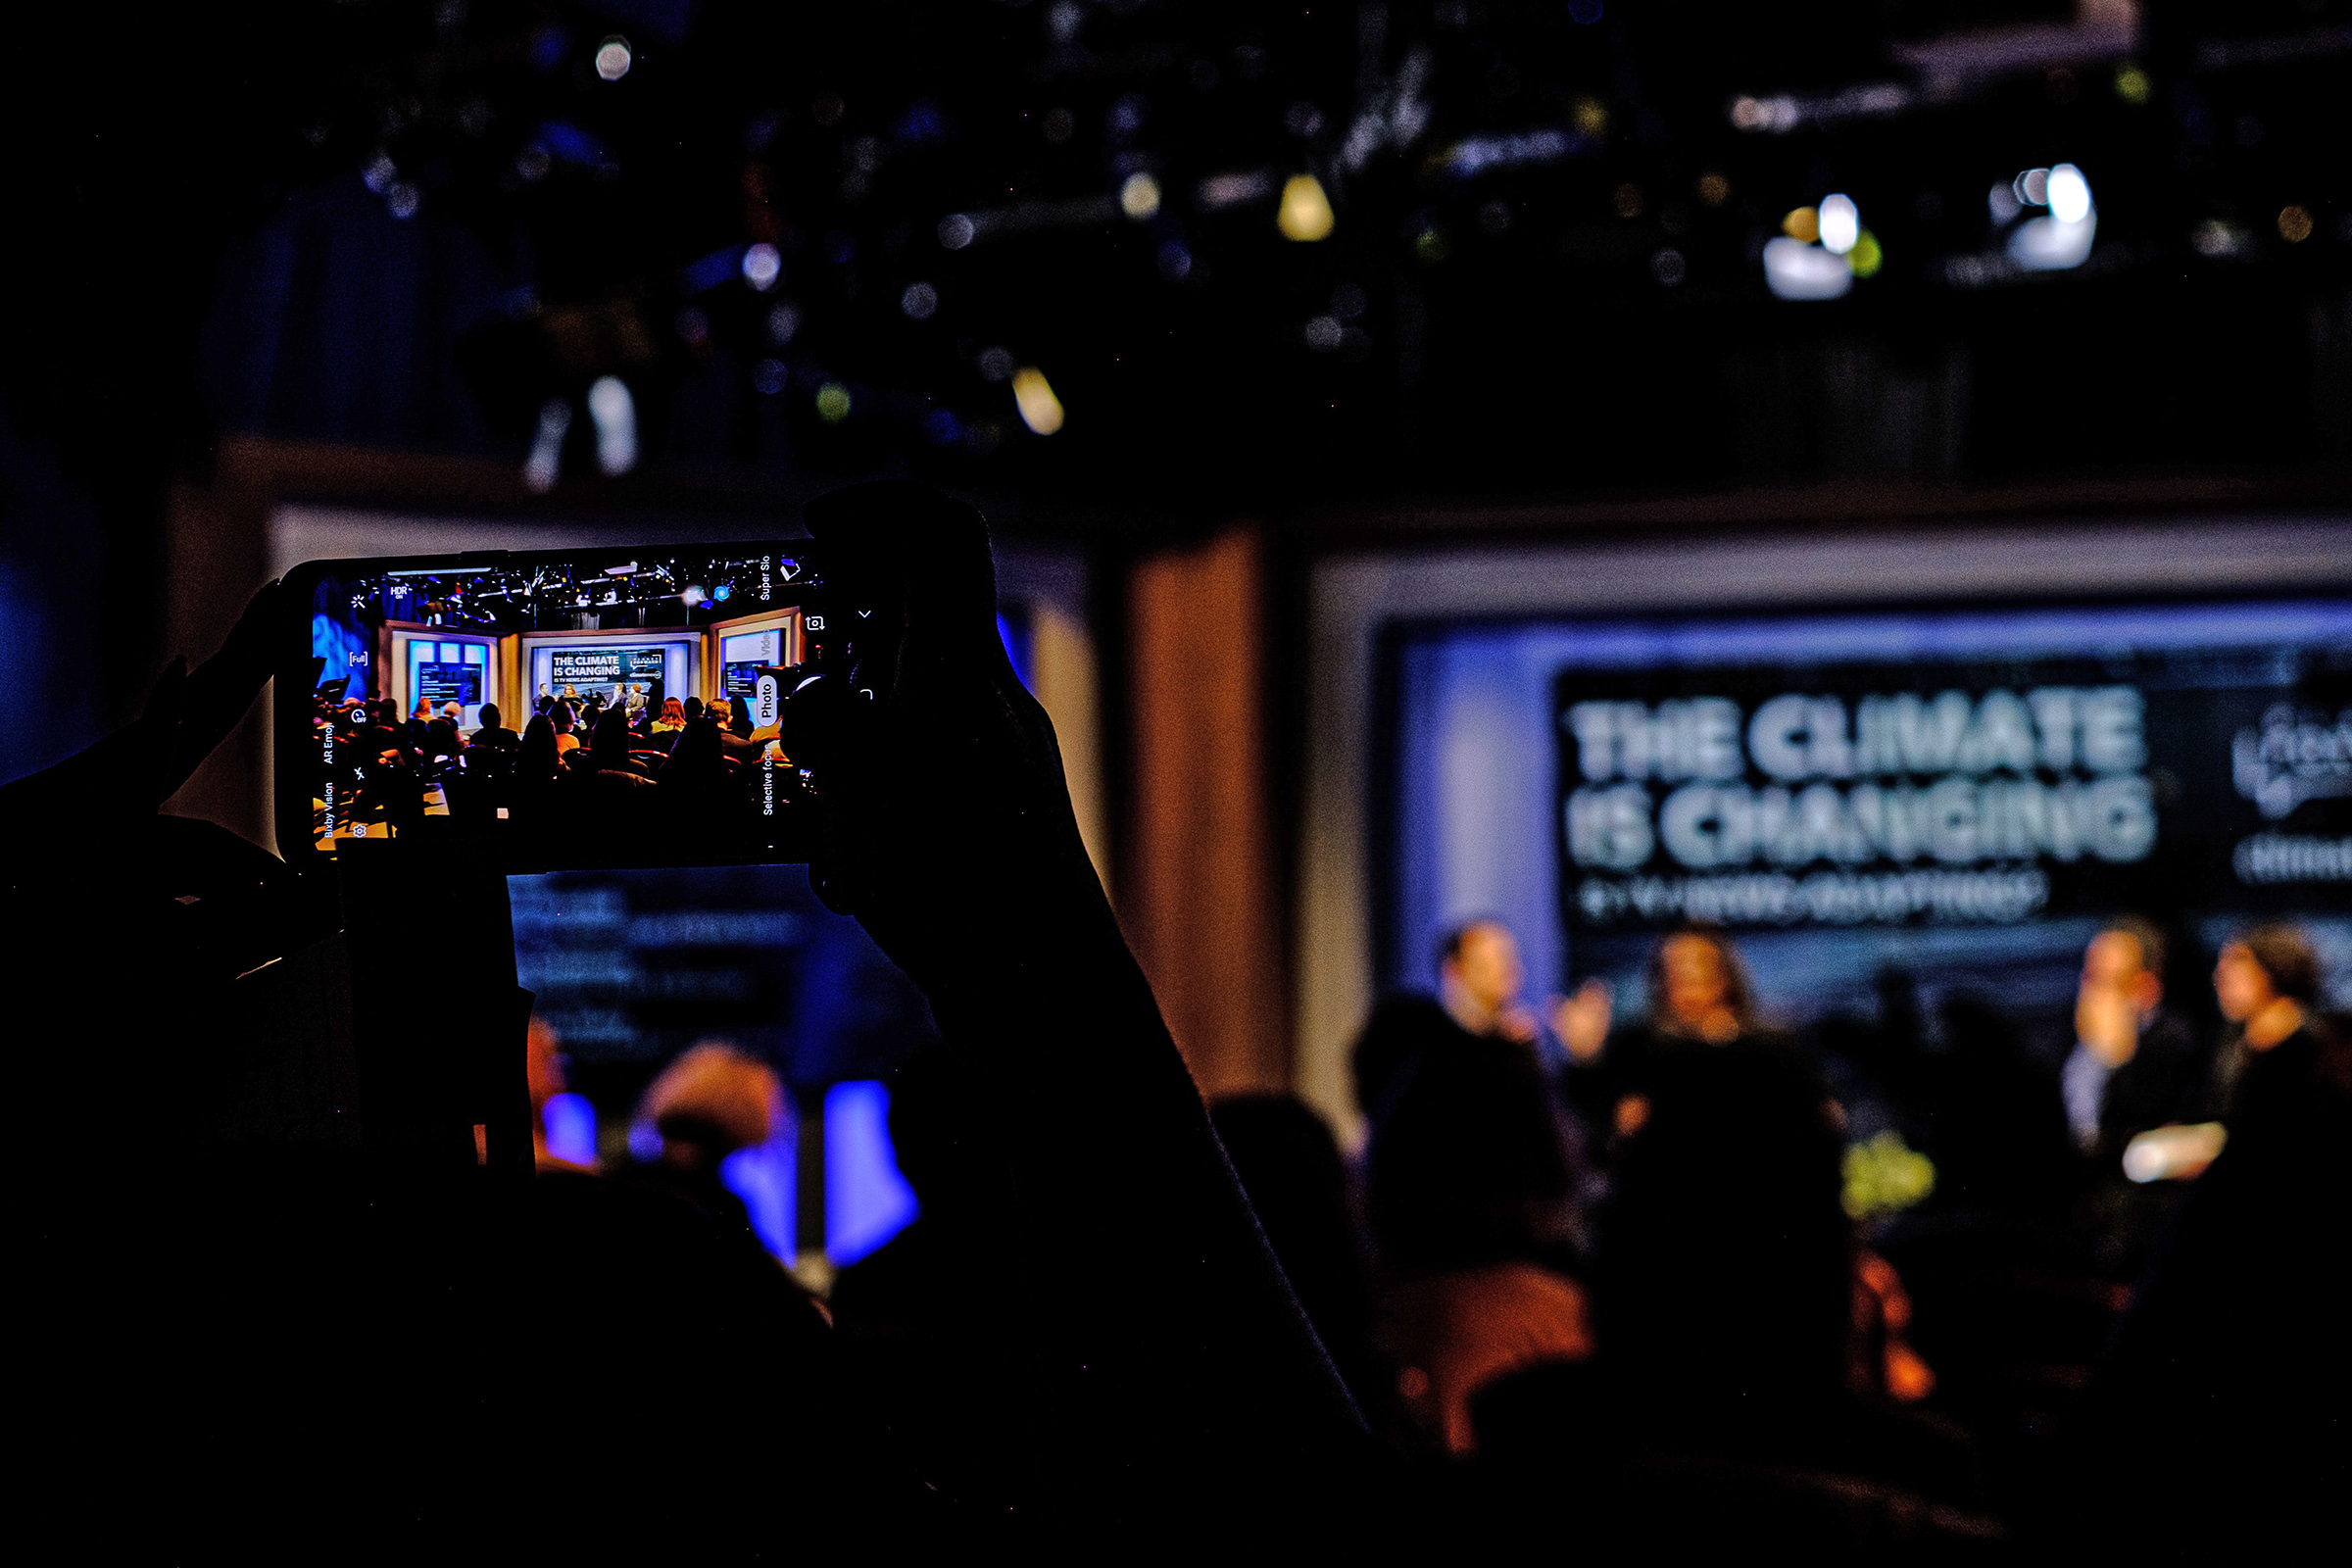 A Climate Nexus staffer snaps a shot of the event from their phone.